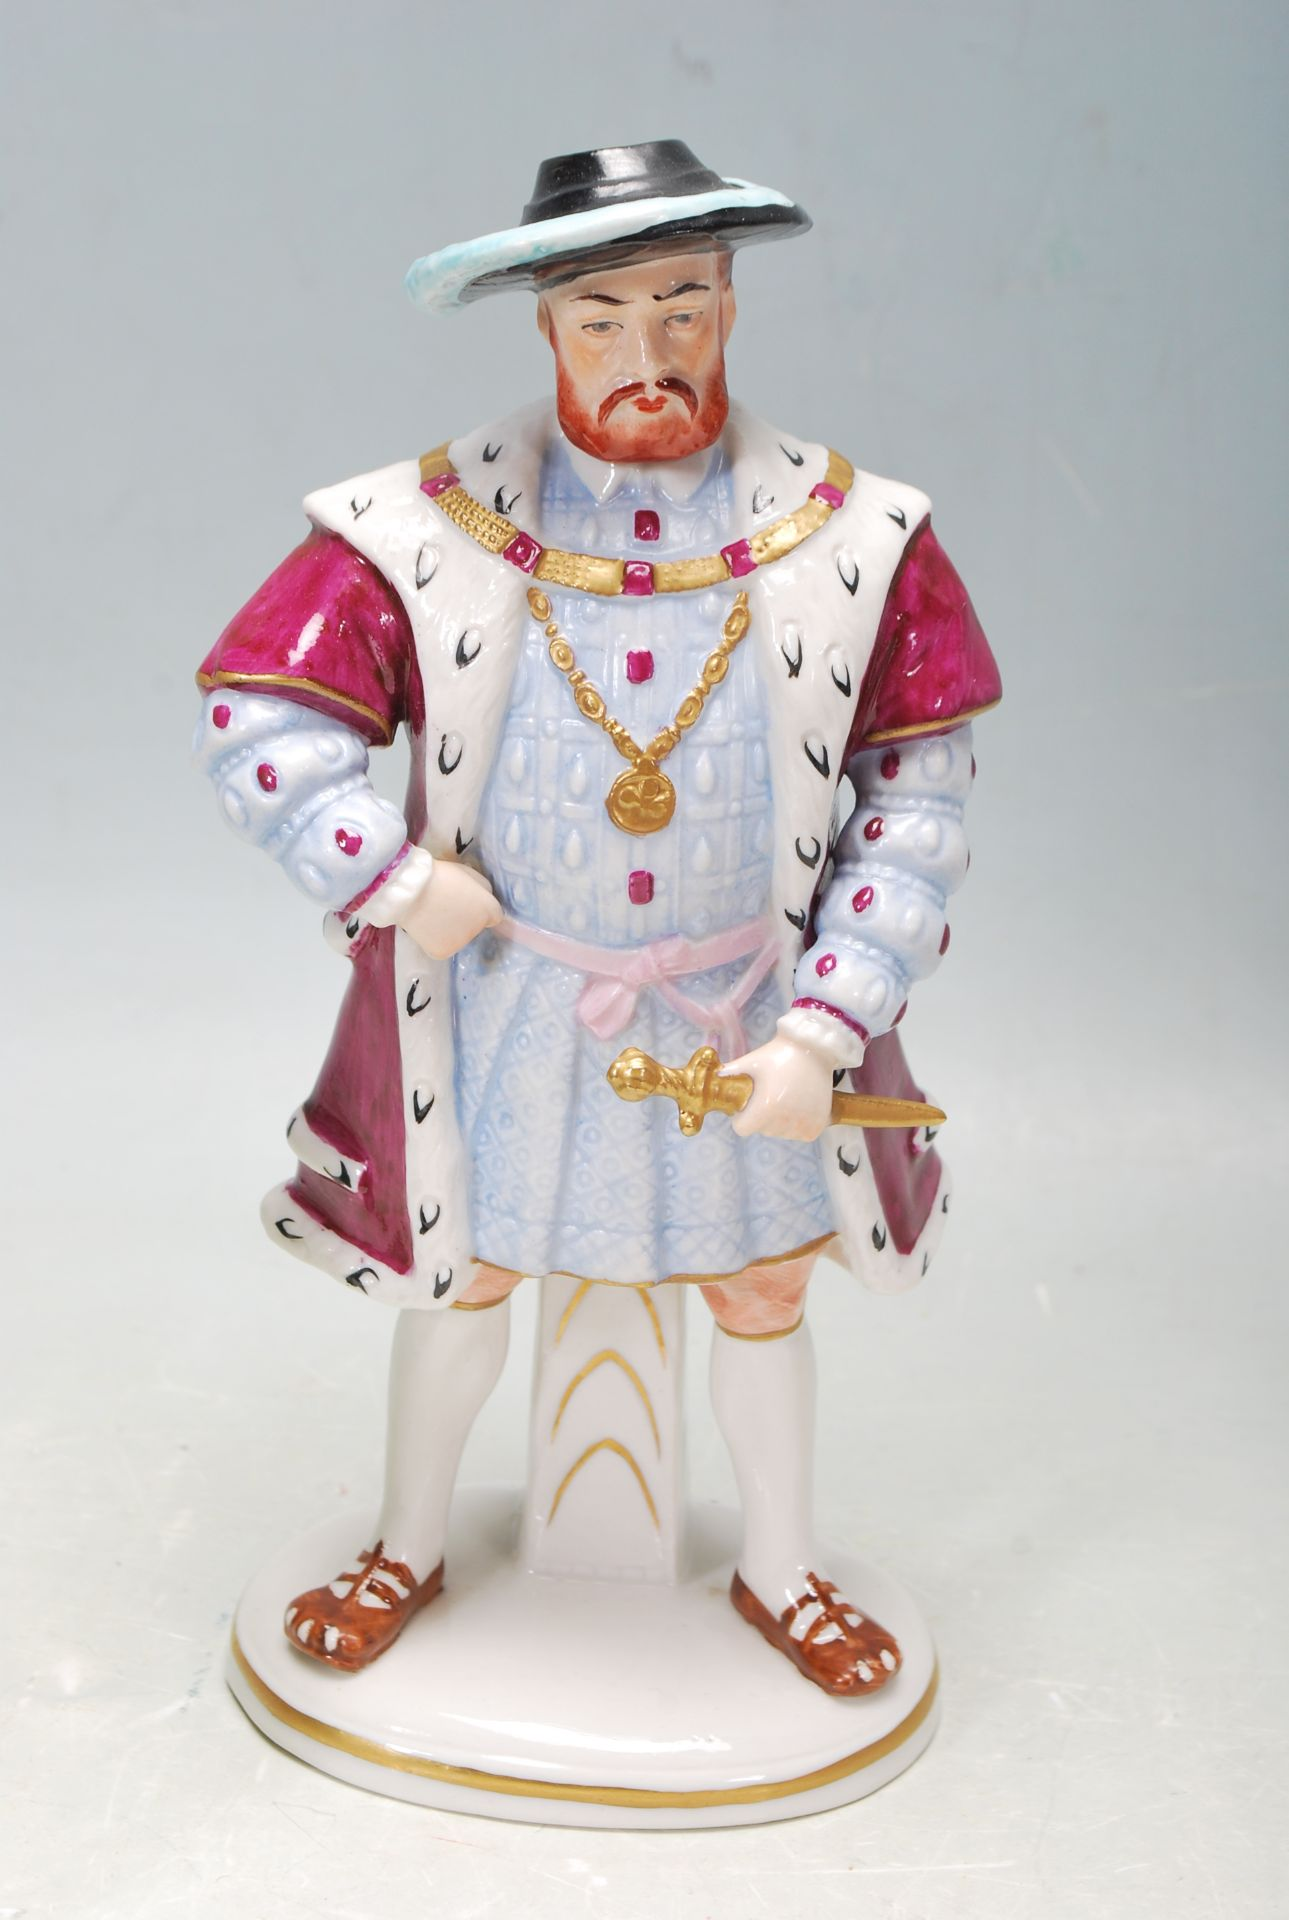 COLLECTION OF SEVEN SITZEDORF CERAMIC PORCELAIN FIGURINES OF HENRY VIII AND HIS SIX WIVES - Image 6 of 8